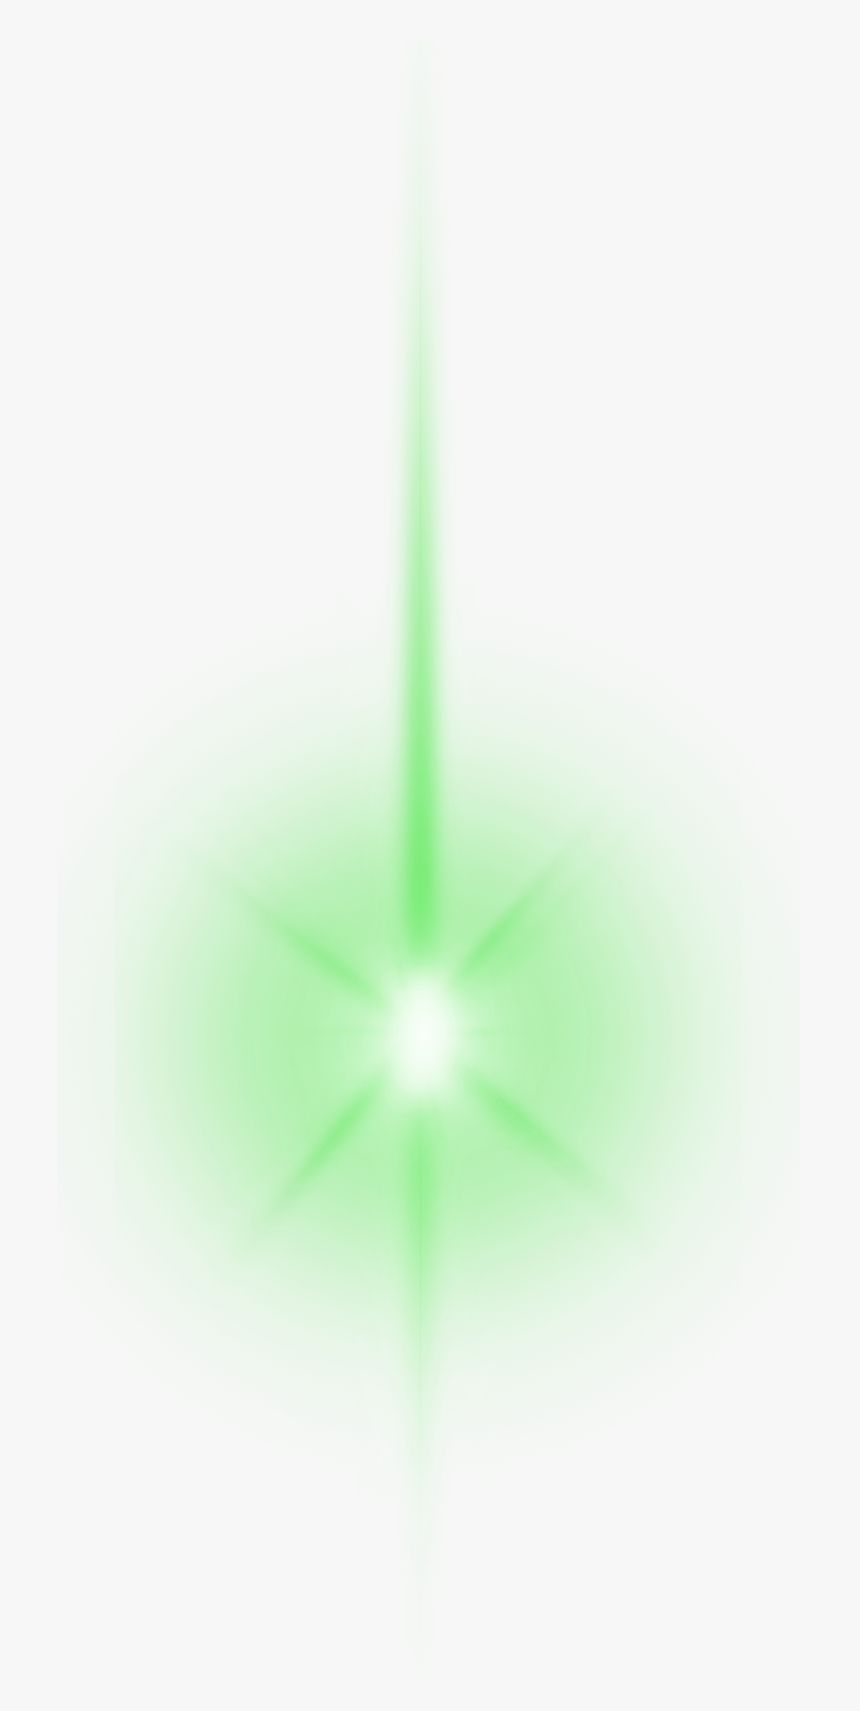 Laser Eye Png - Glowing Eyes Meme Transparent, Png Download, Free Download